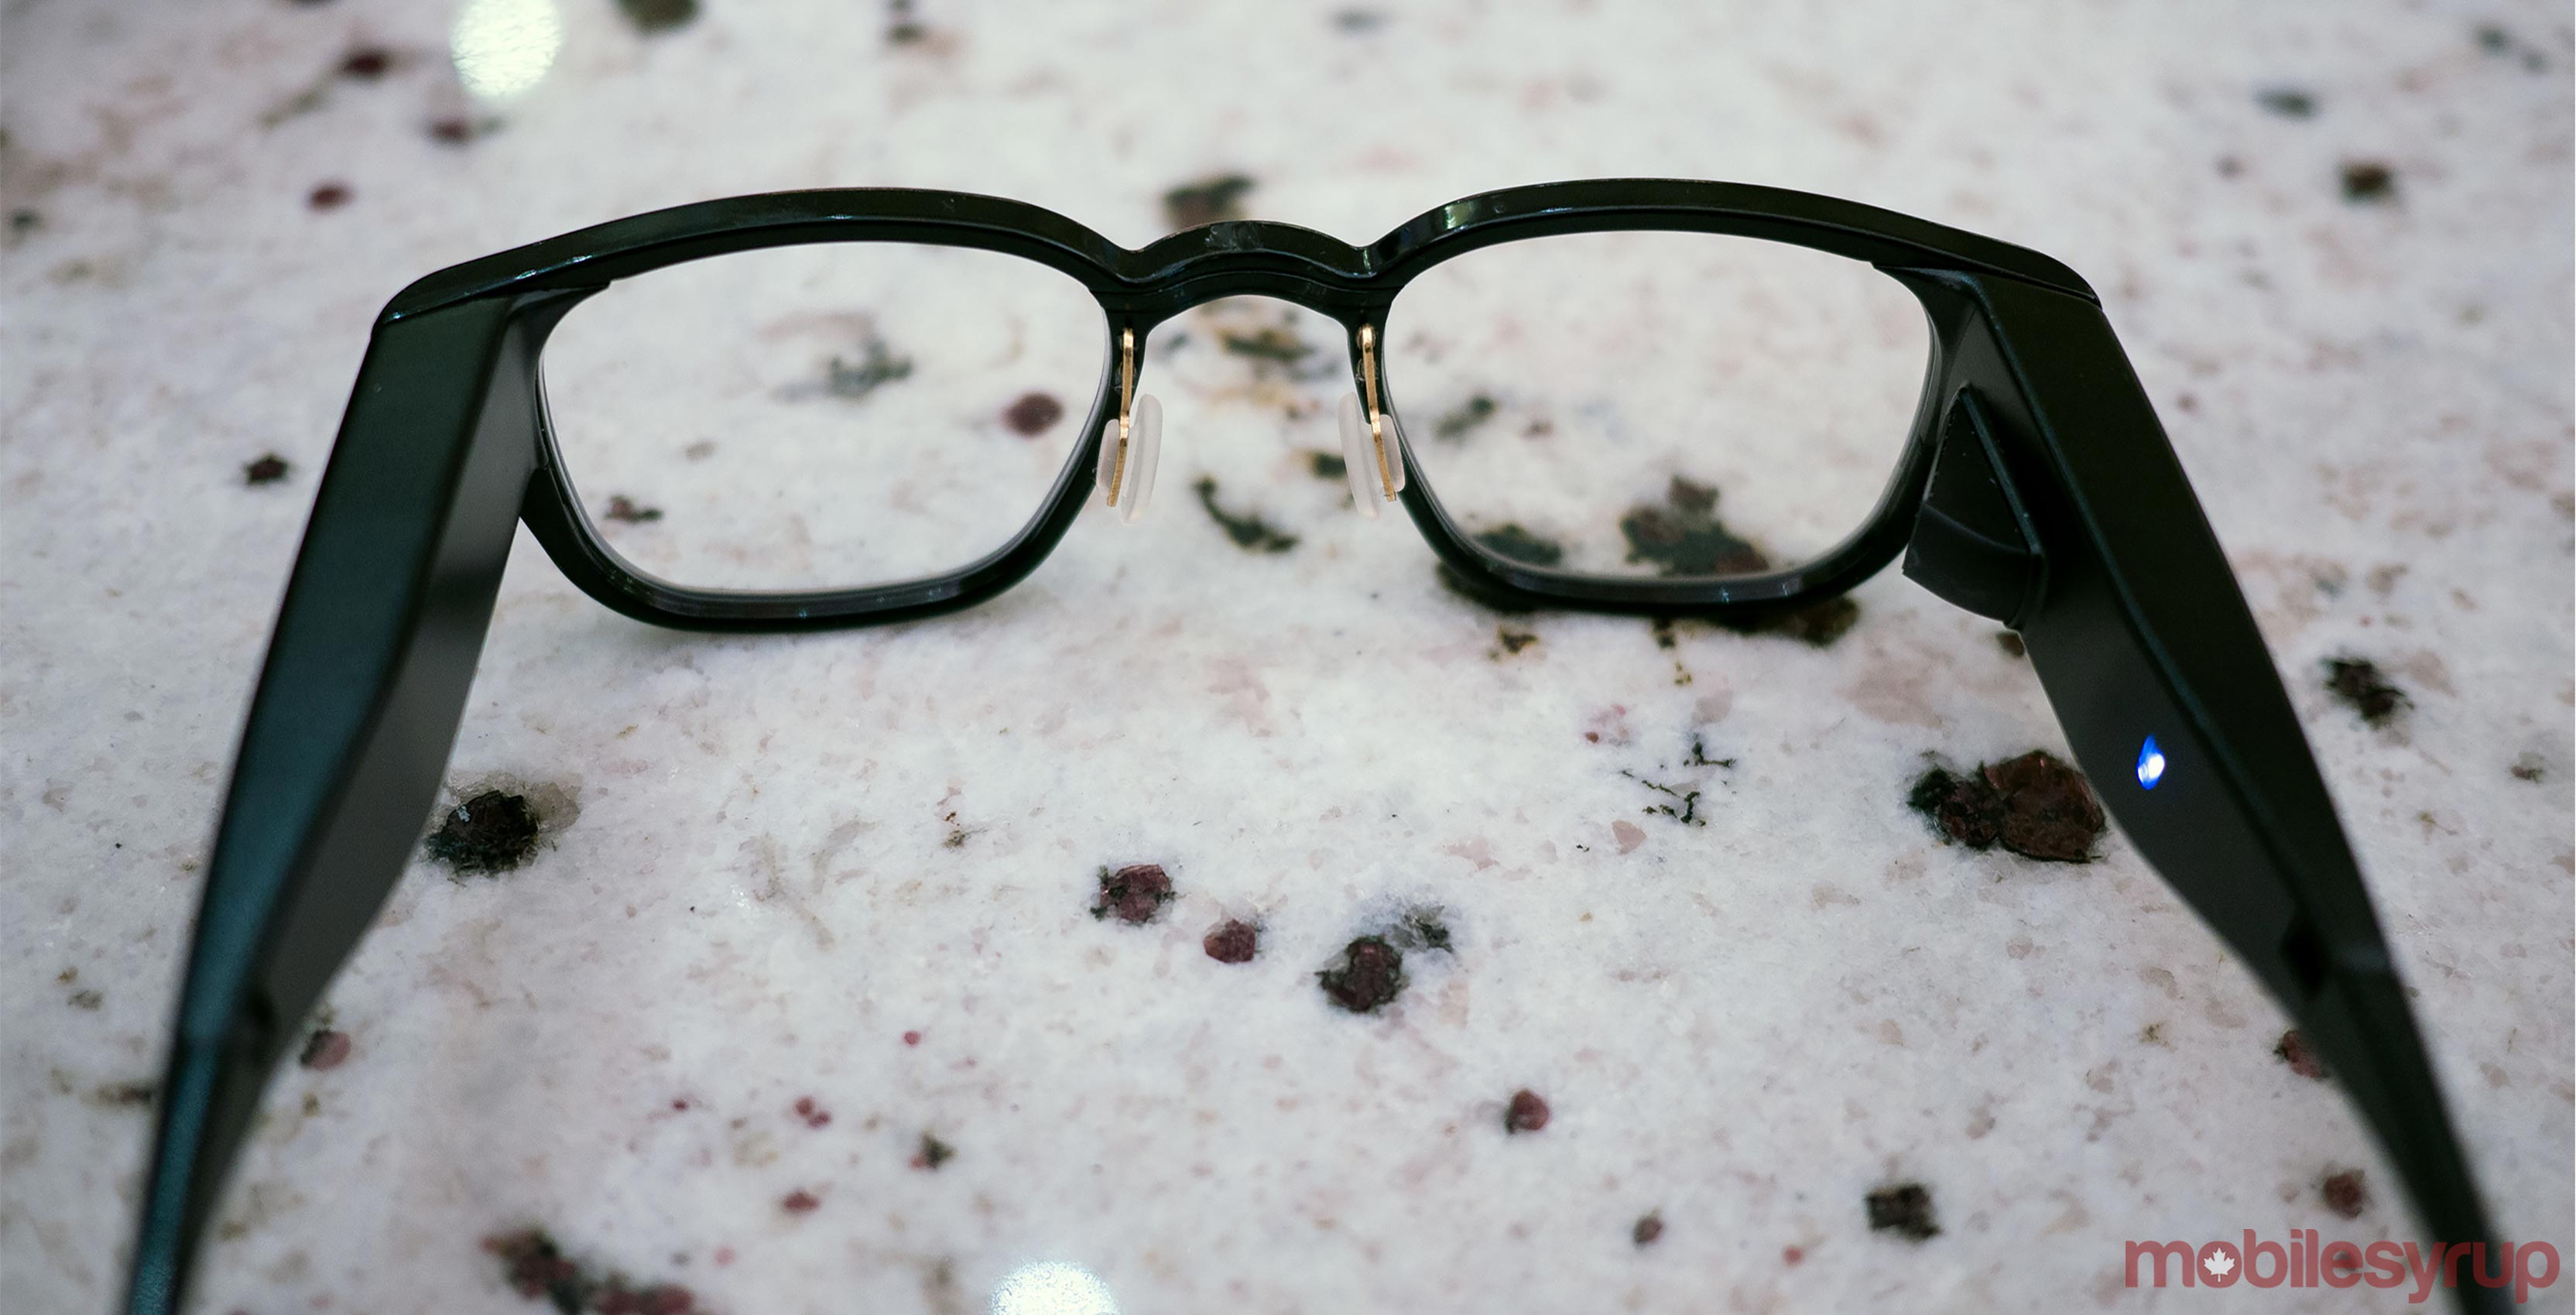 Focals smartglasses get Google Fit and screen time update